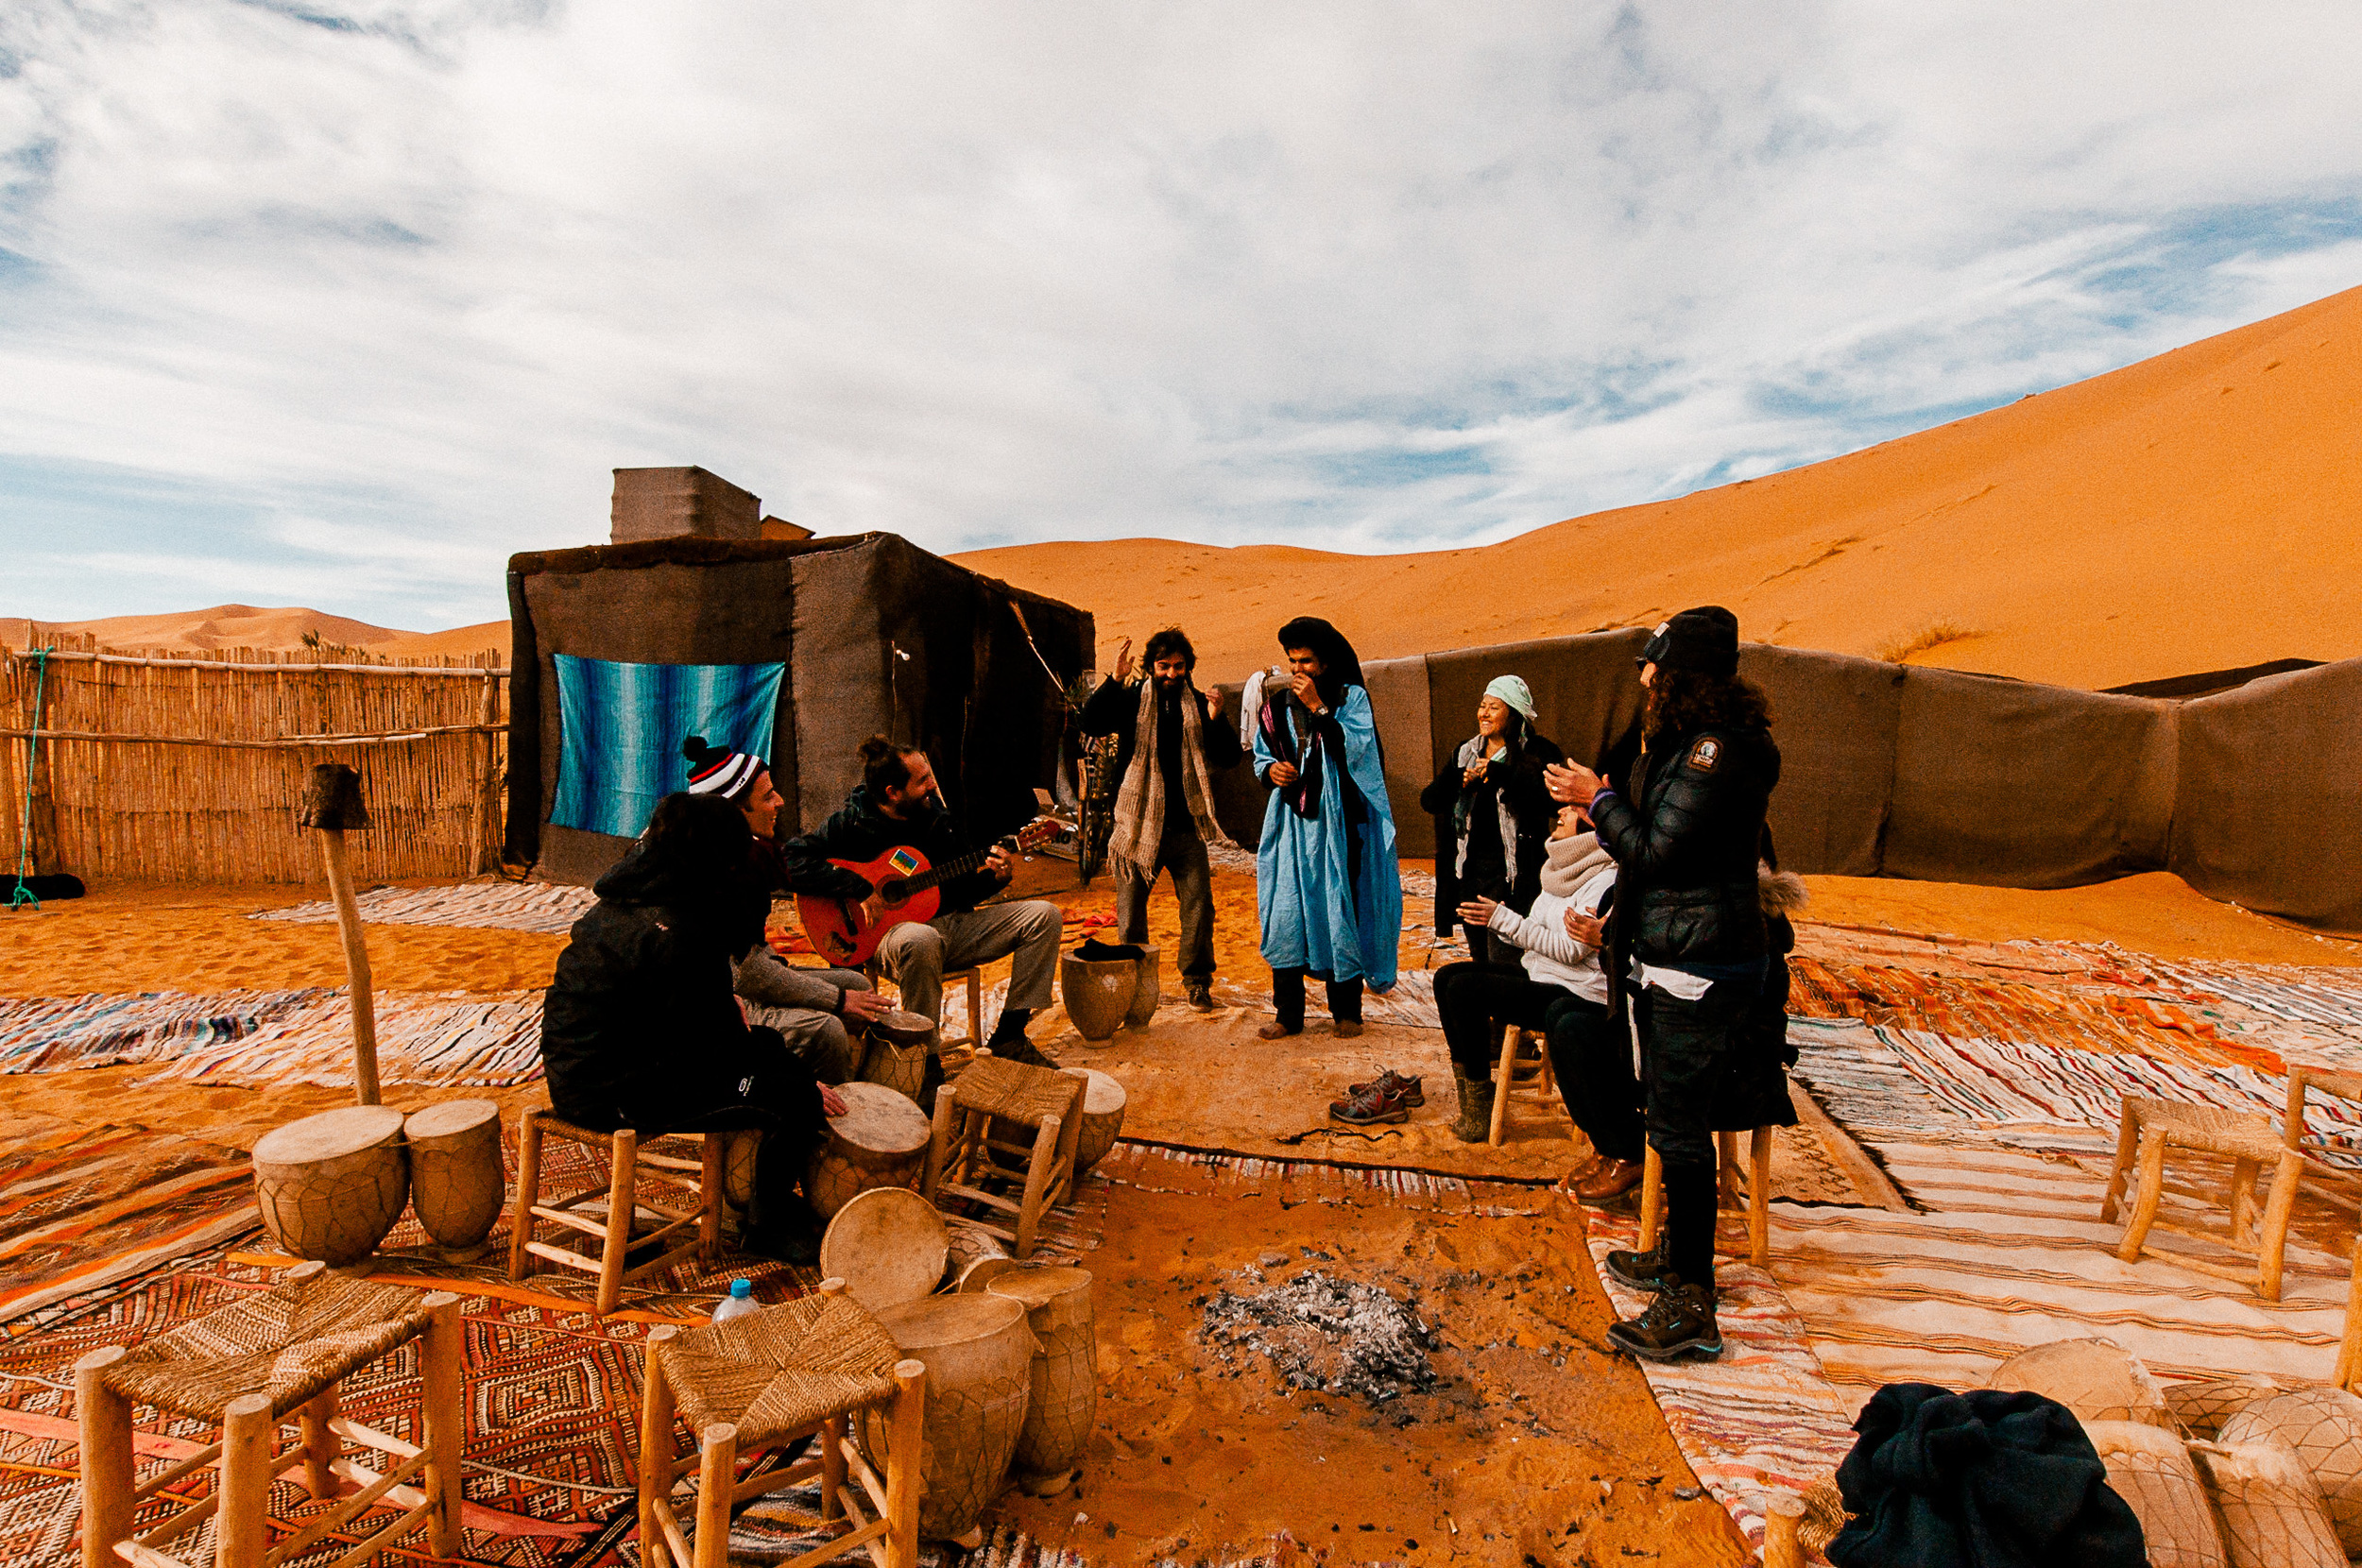 The gang jamming to some music before riding back to Merzouga.